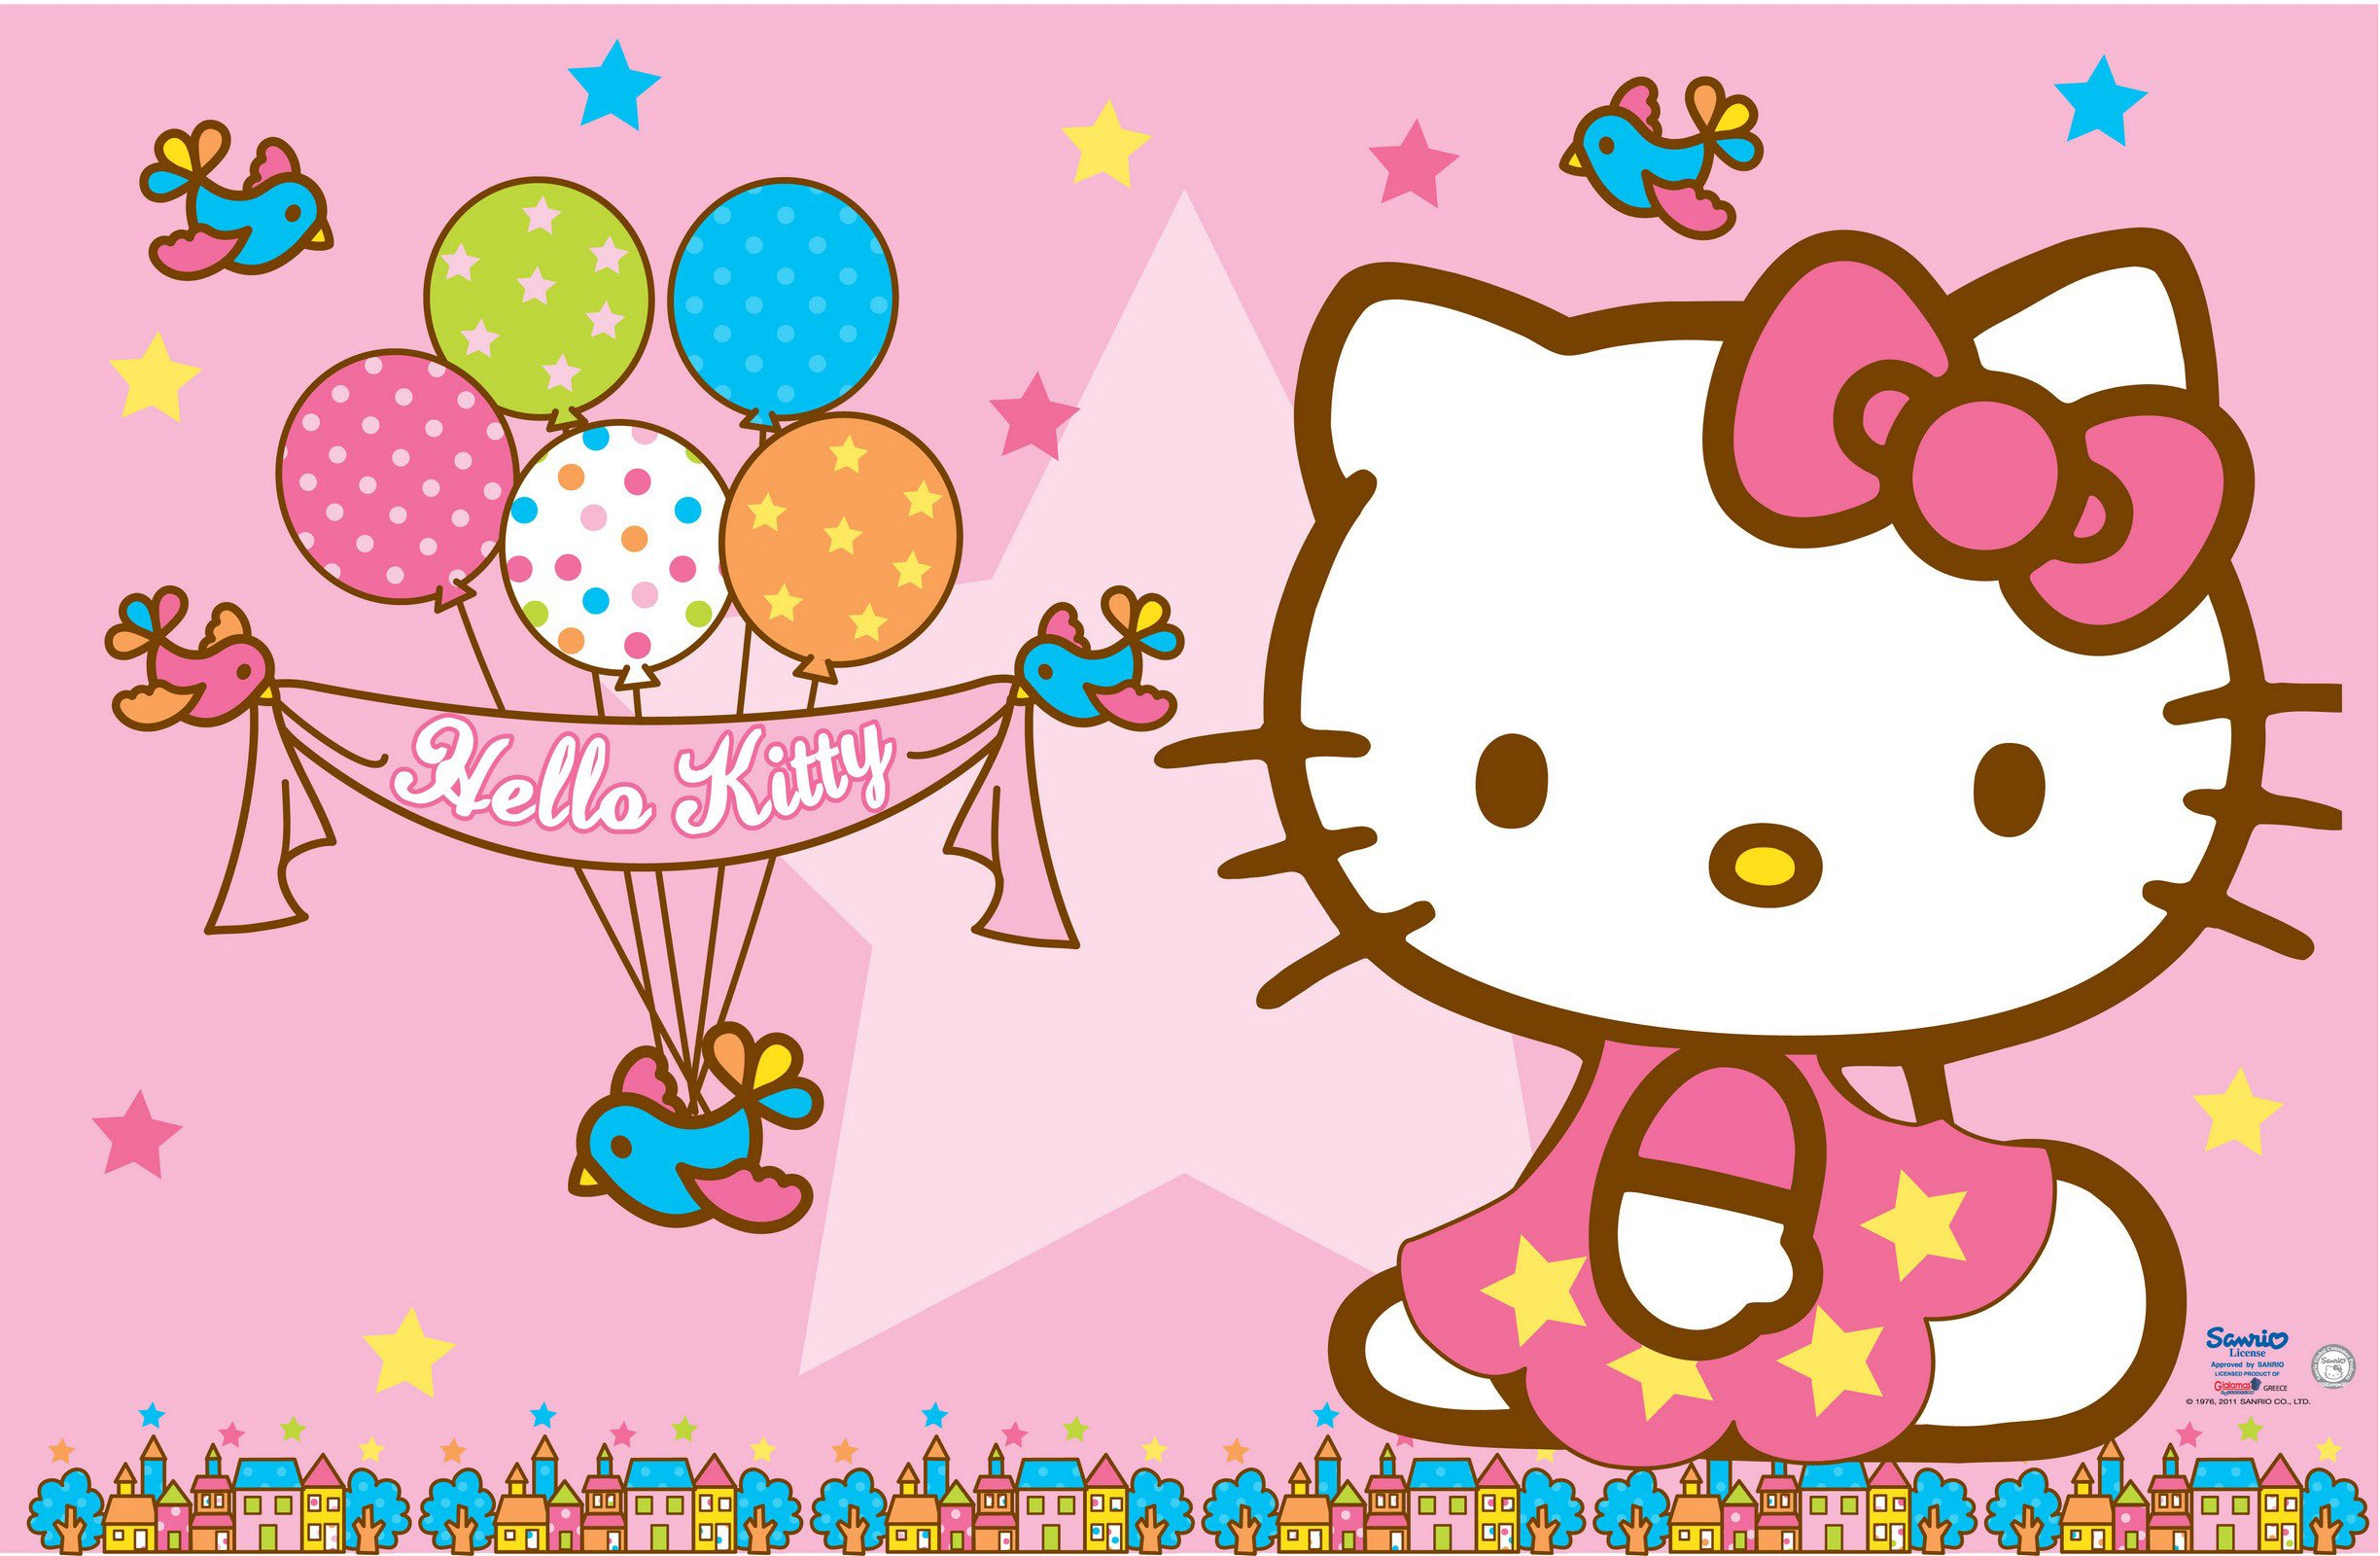 Hello Kitty Wallpaper   Pink Background and Balloons for Birthday 2448x1600